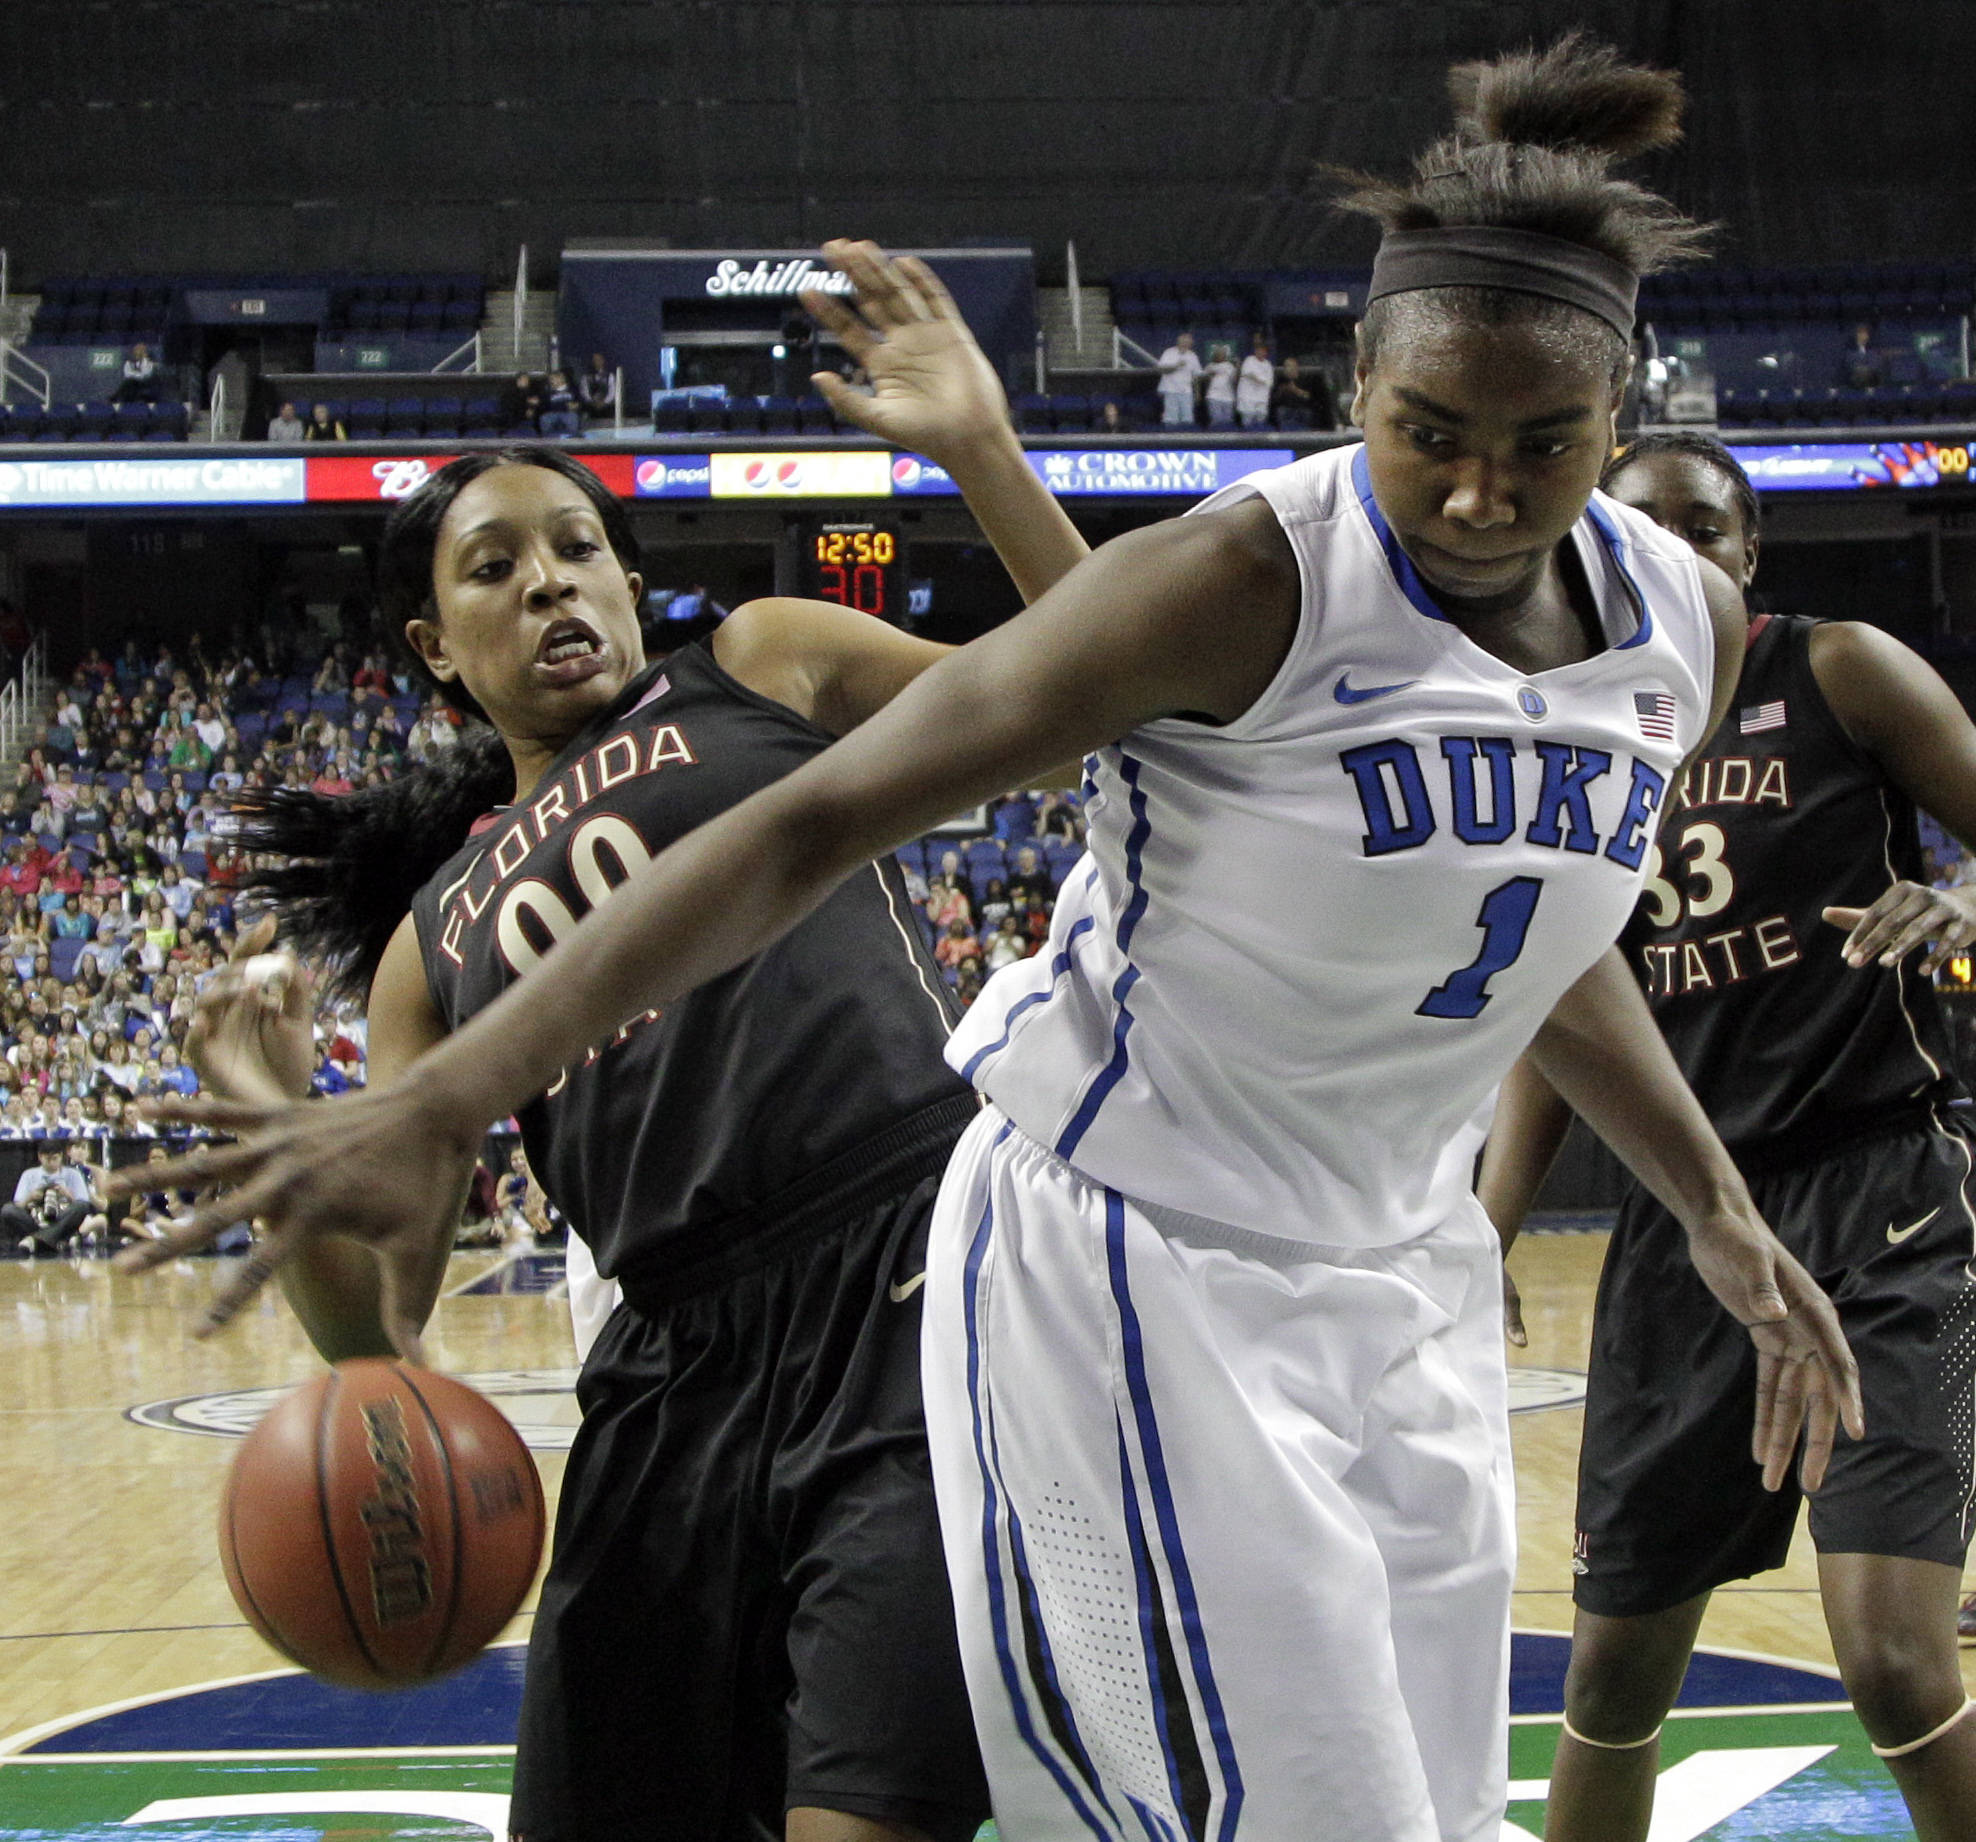 Duke's Elizabeth Williams (1) and Florida State's Chasity Clayton (00) battle for a rebound. (AP Photo/Chuck Burton)